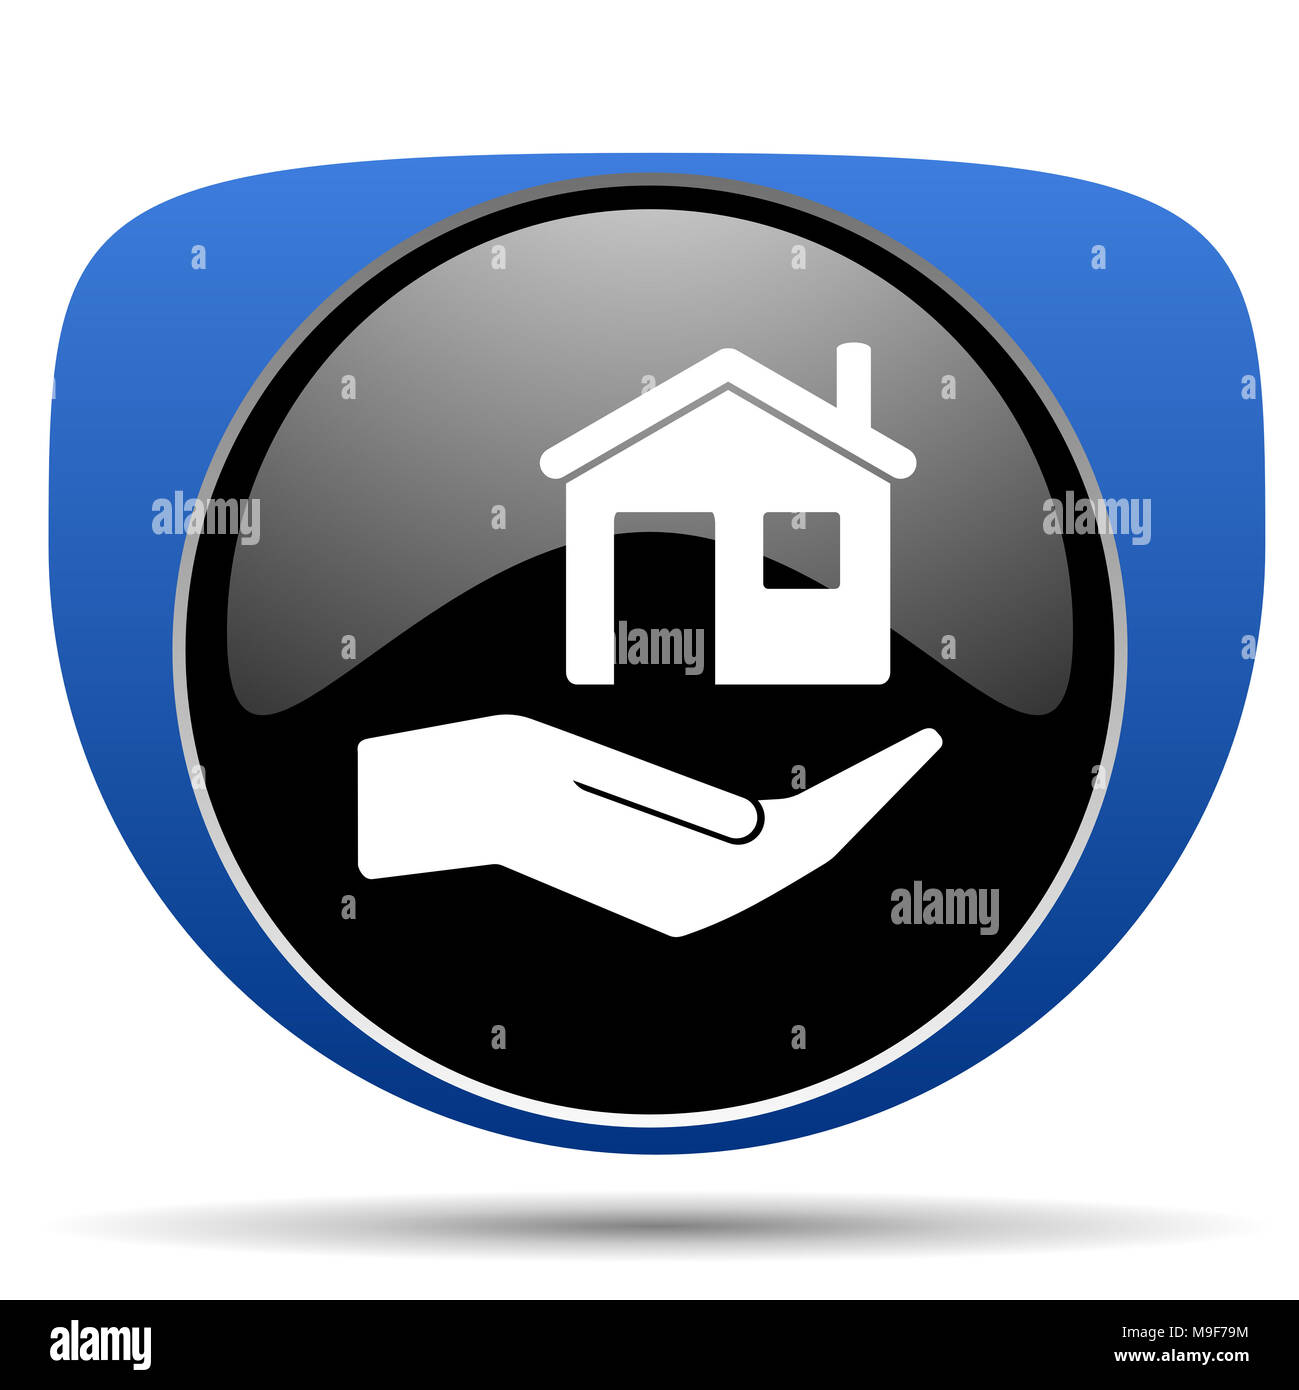 House care web icon - Stock Image